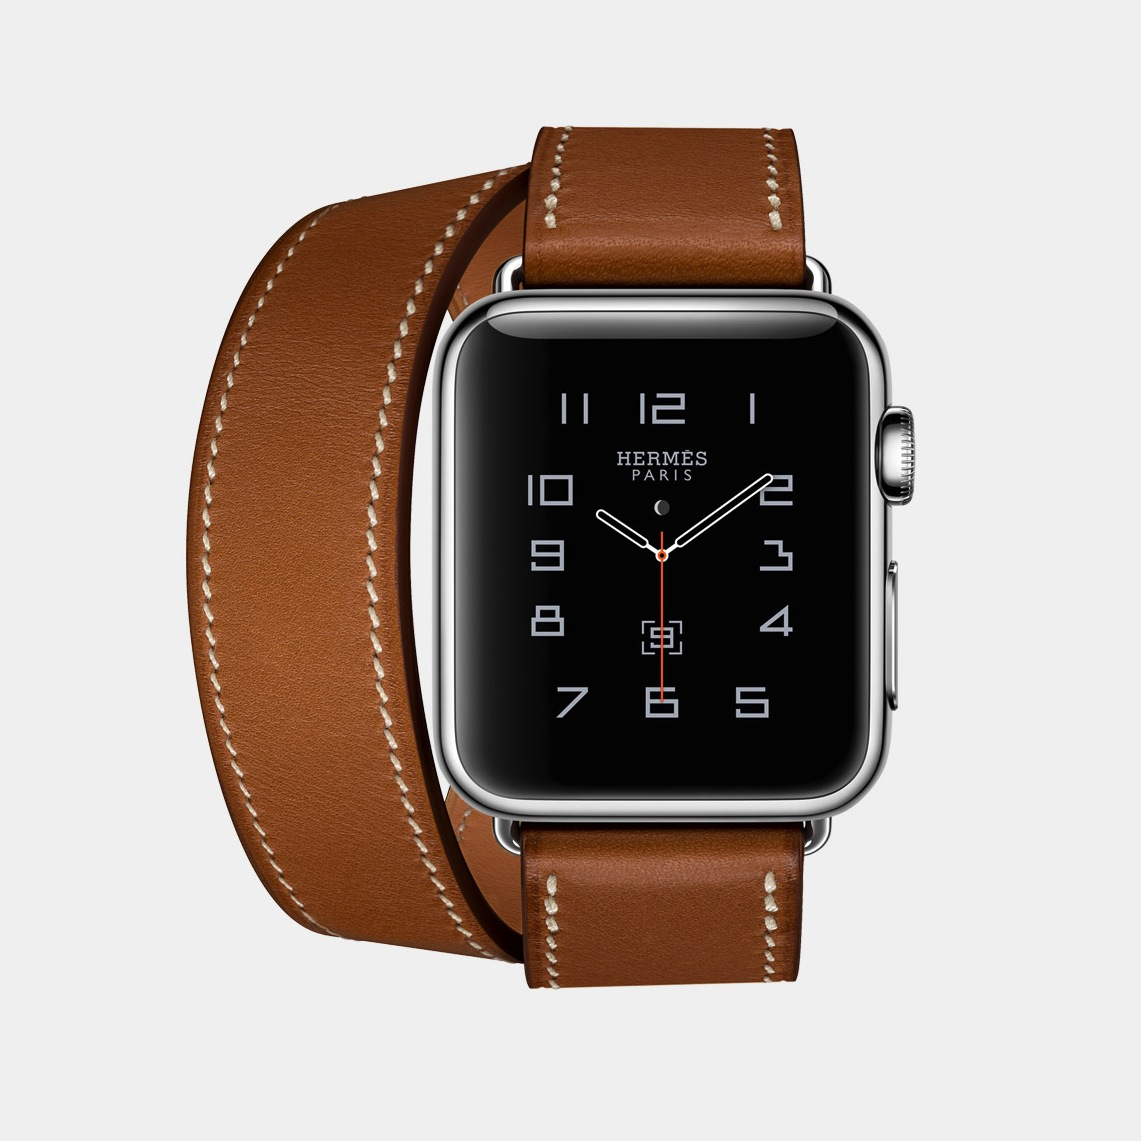 hermes bag - Apple Watch Herm��s, ultimate tech luxury - Chapter FiftyChapter Fifty